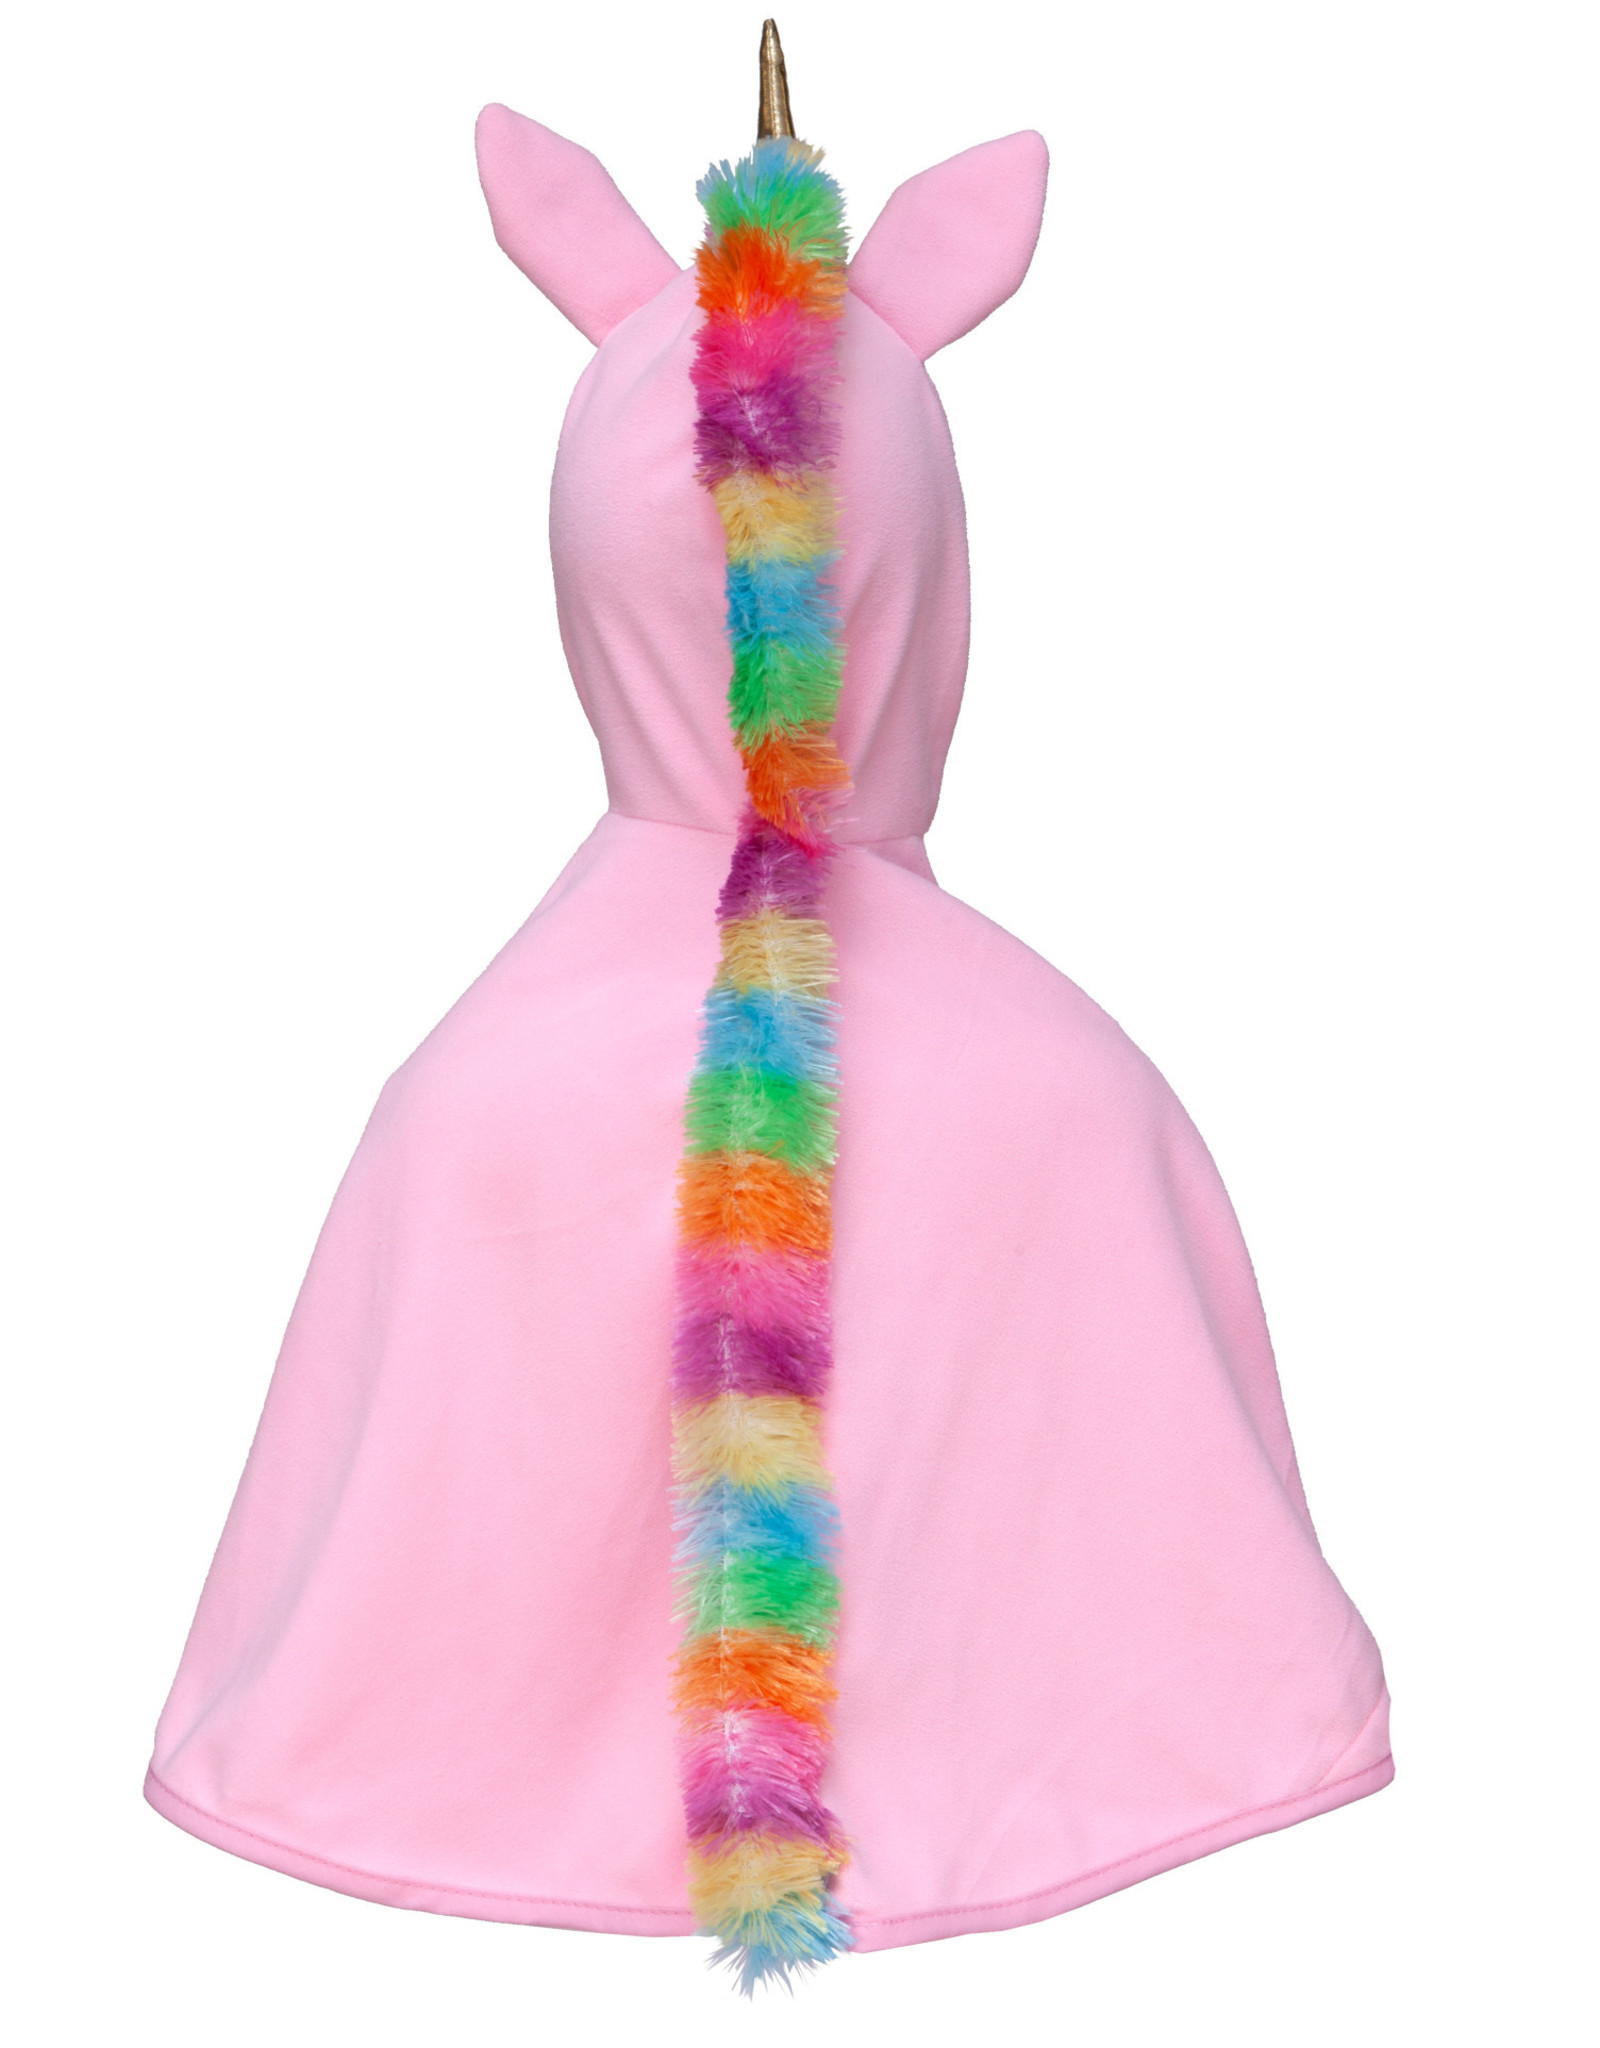 Great Pretenders Baby Unicorn Cape - Pink - Size 12-24 months